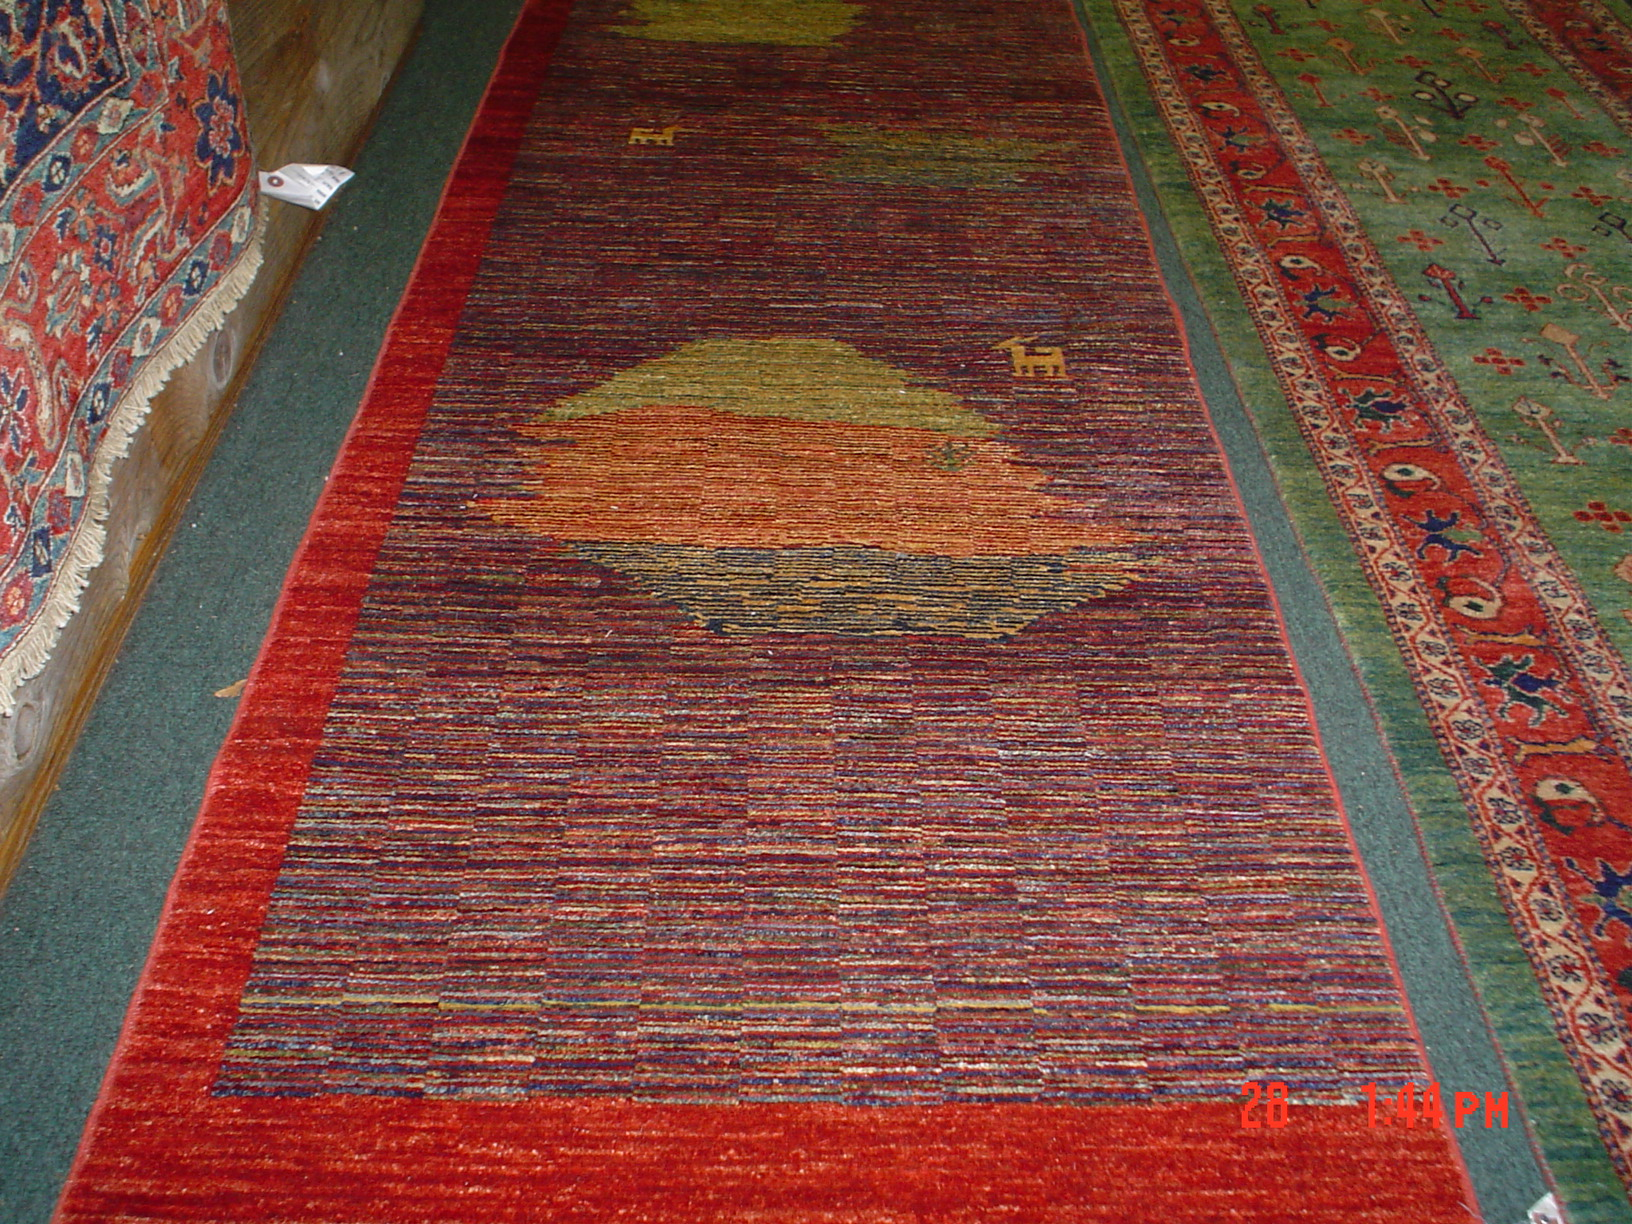 "#14a) Smaller modern Afghan runner. 2'6"" x 8', very finely woven. Multi-colored small runner in a modern design."